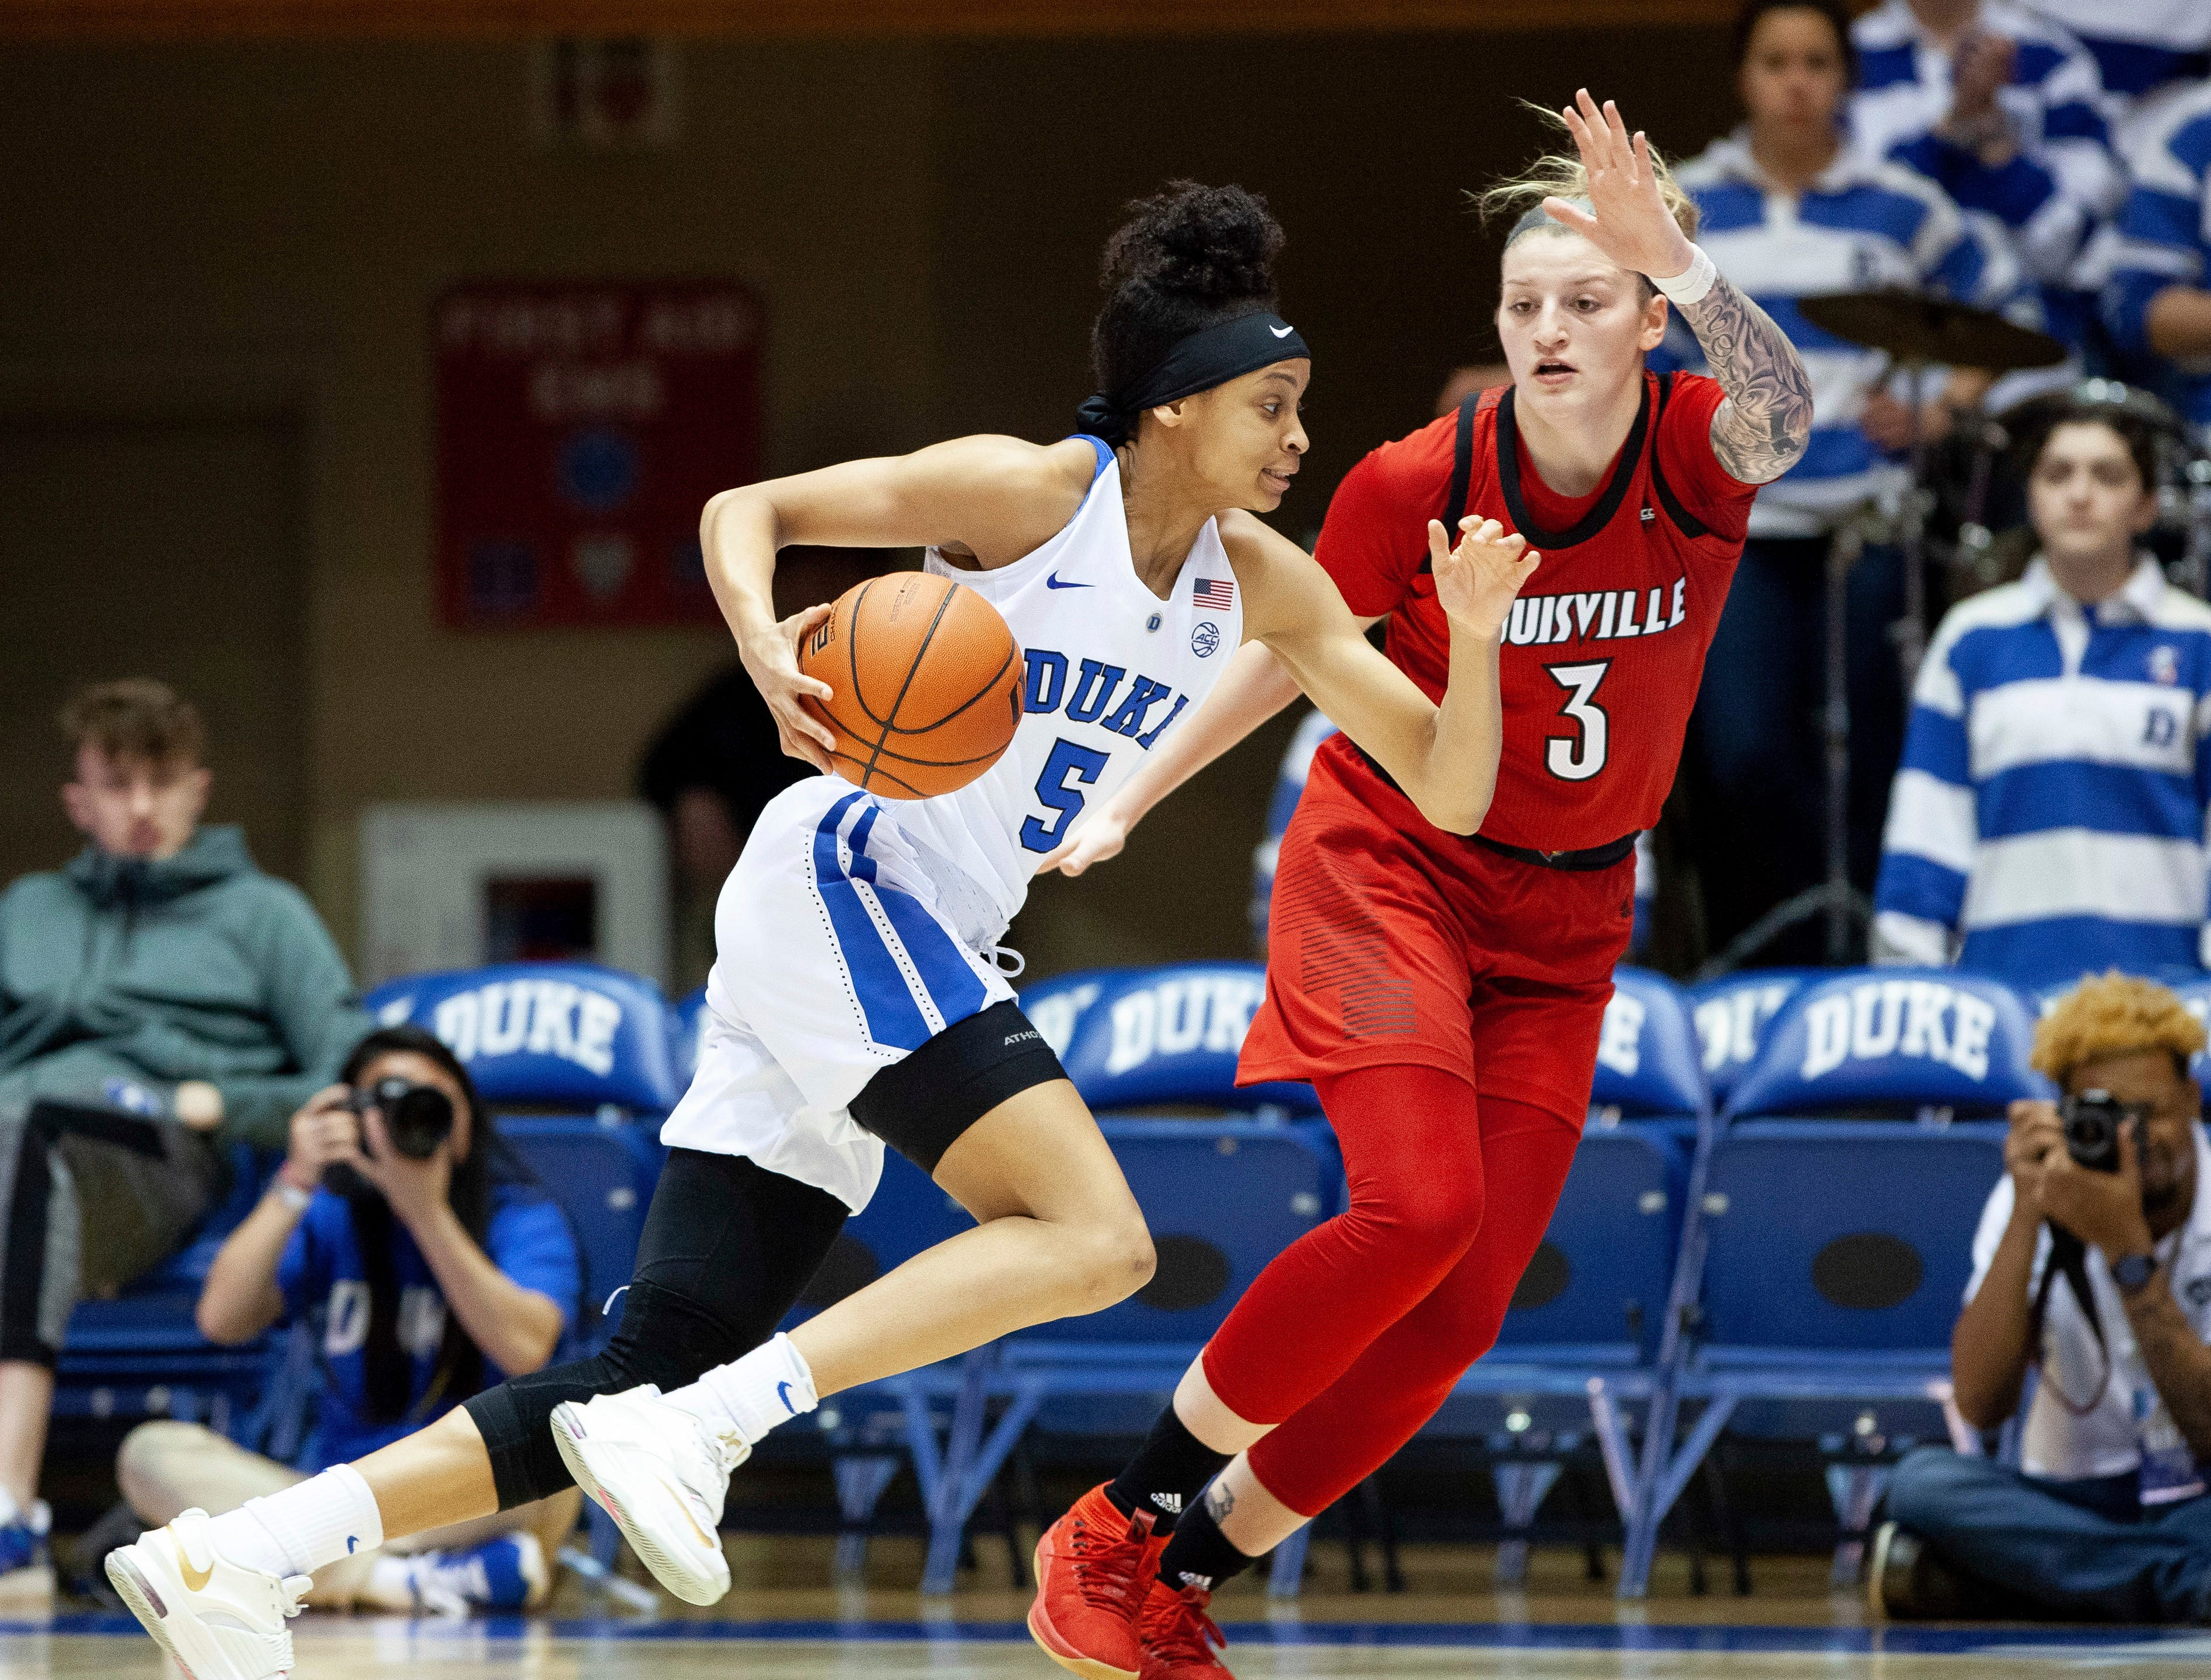 Duke's Leaonna Odom (5) drives against Louisville's Sam Fuehring (3) during the first half of an NCAA college basketball game in Durham, N.C., Sunday, Jan. 6, 2019.